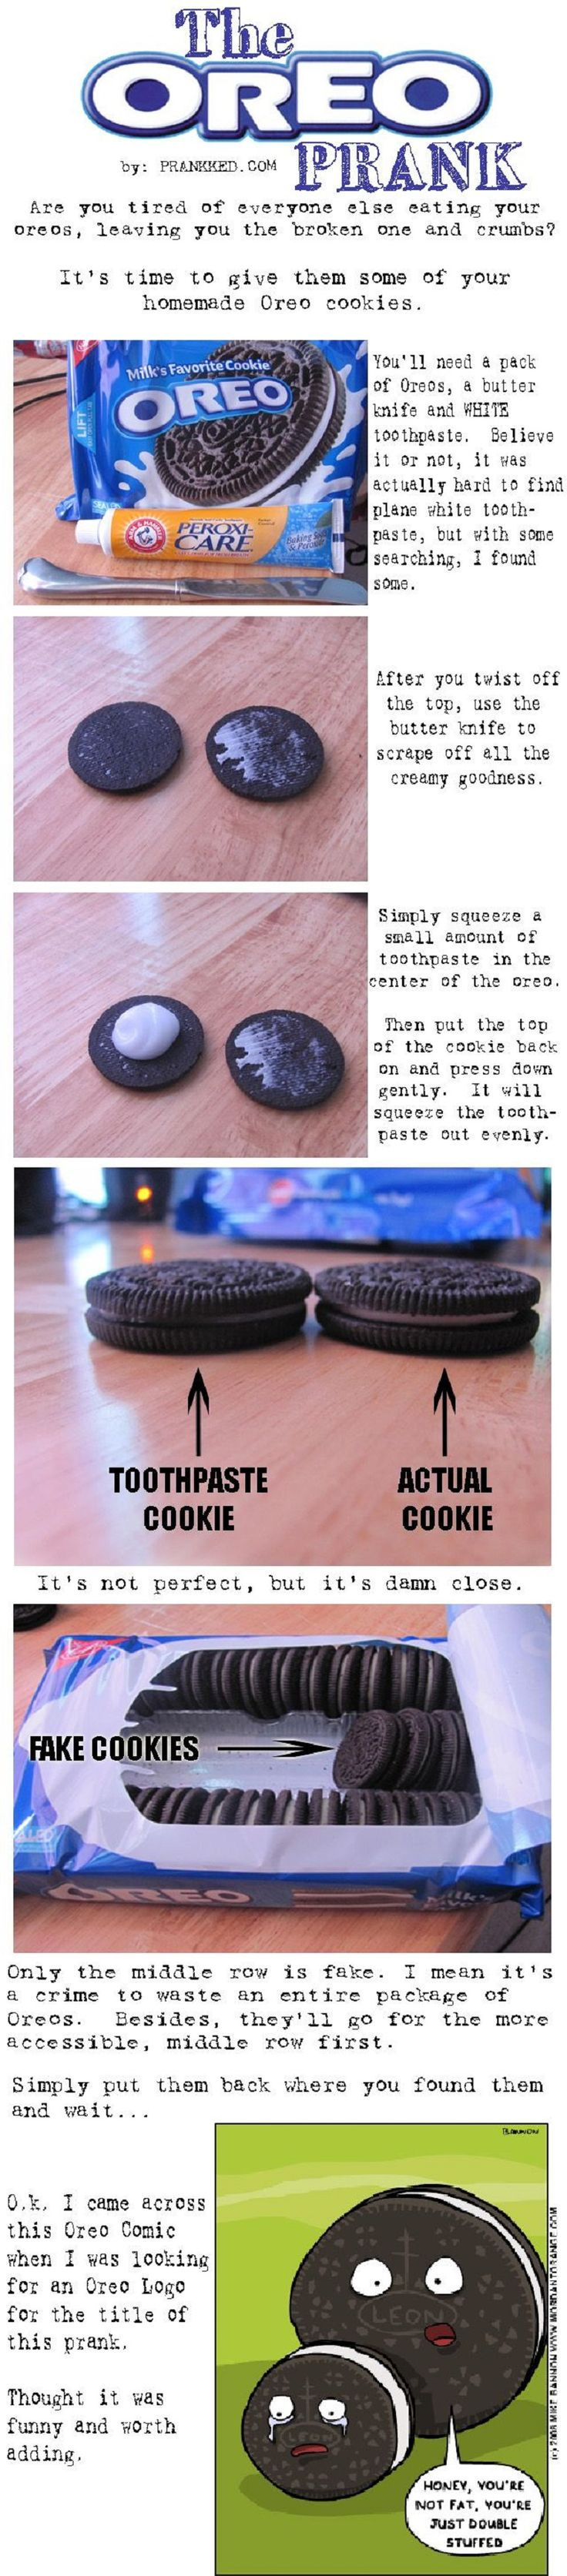 The Oreo Prank - 20 Best April Fool's Day Pranks to Fool Friends and Family | GleamItUp